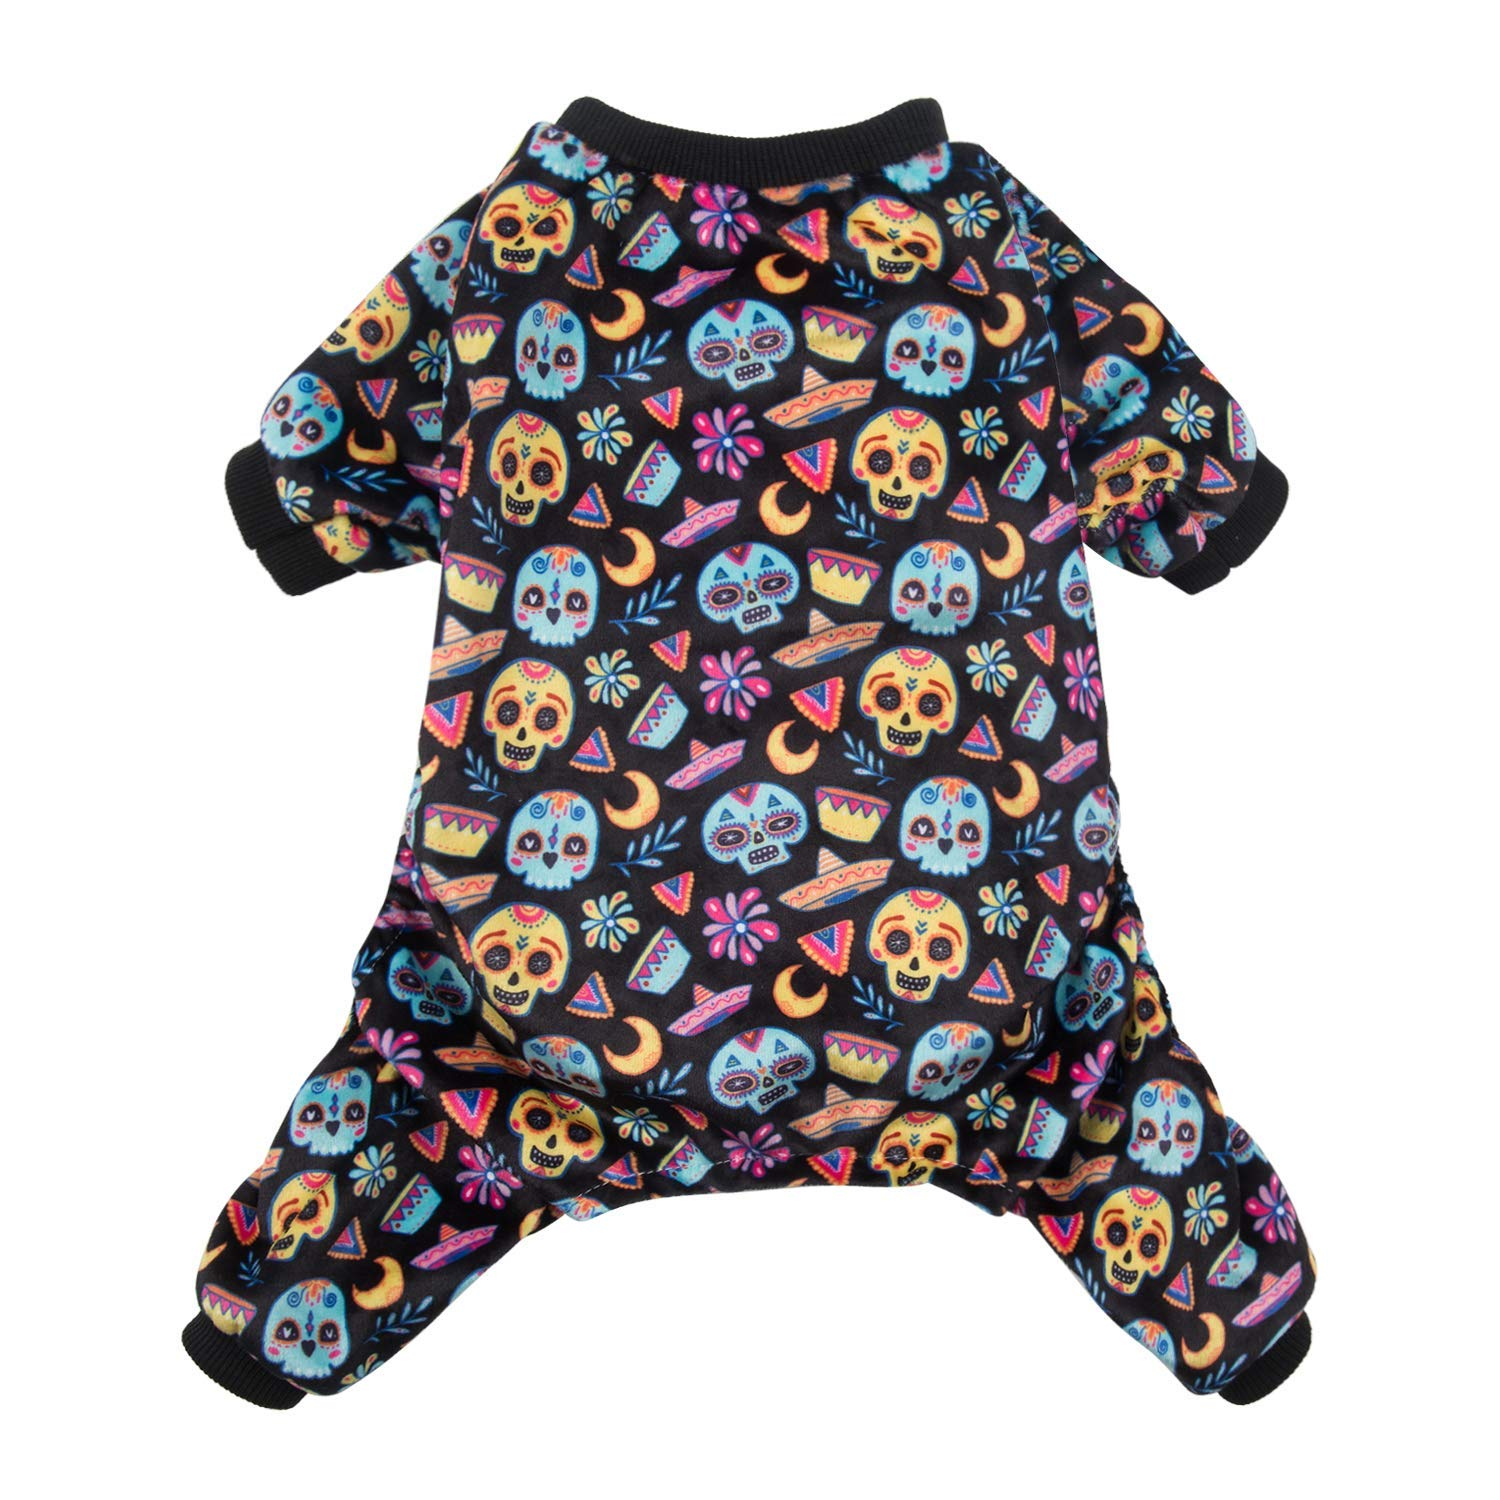 CuteBone Dog Pajamas Coco Skulls Dog Apparel Dog Jumpsuit Pet Clothes Pajamas P73S by CuteBone